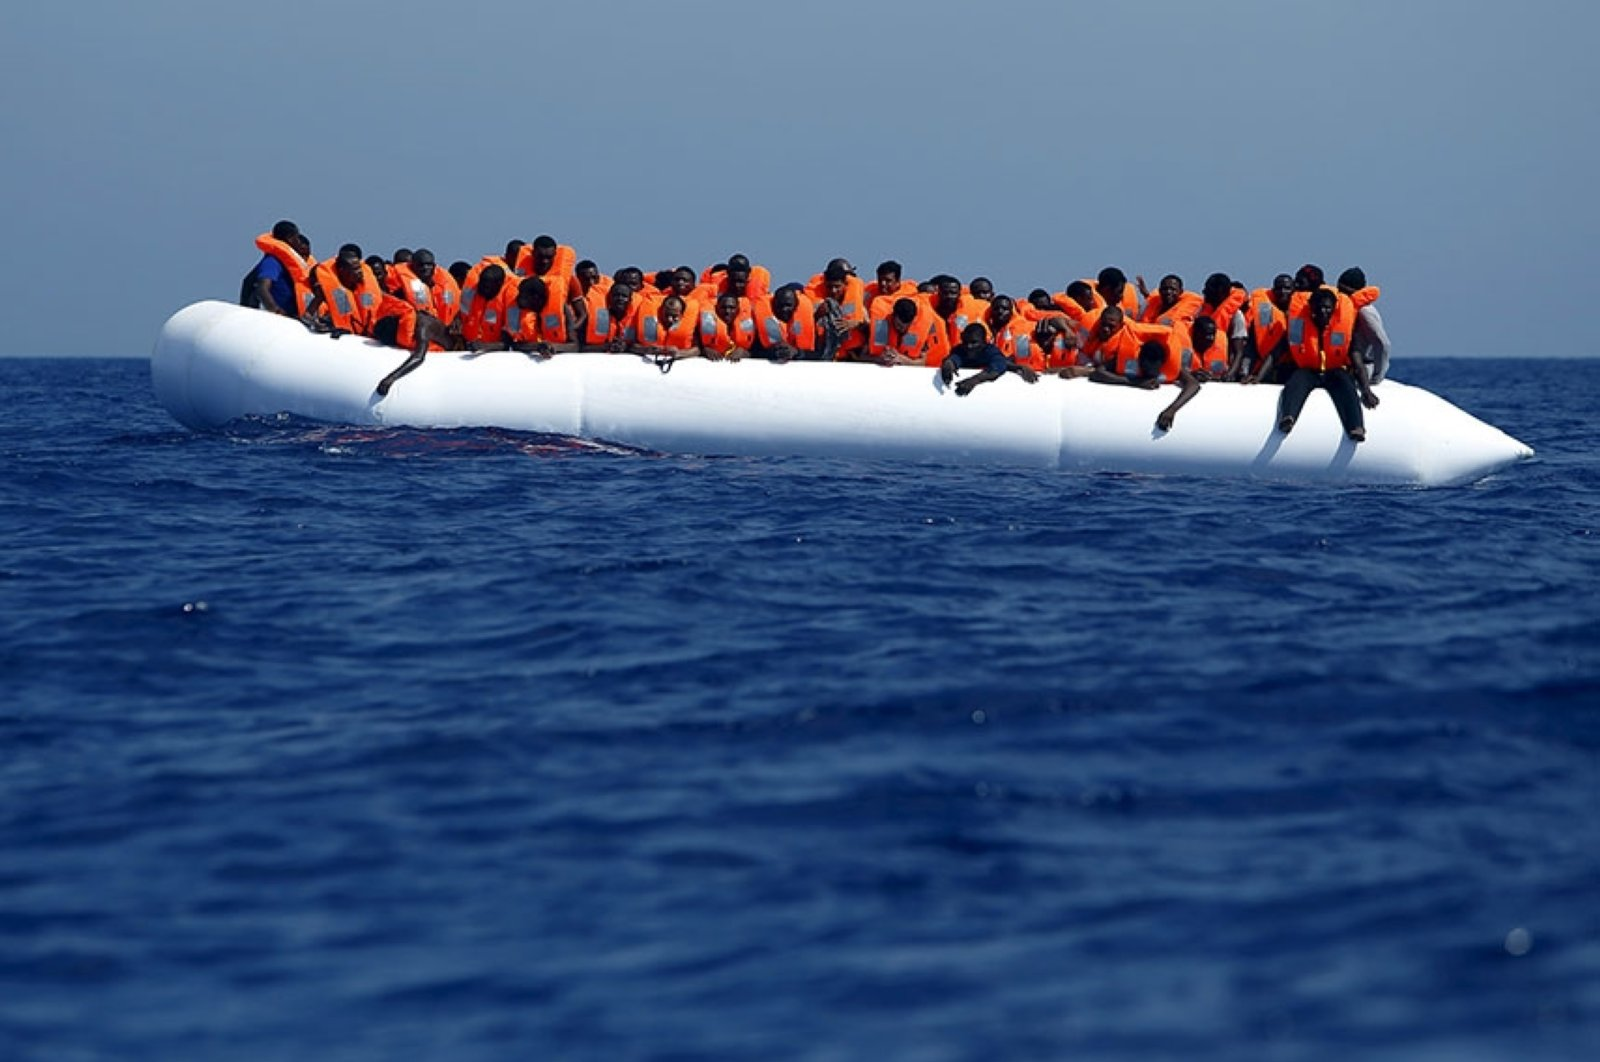 A migrant boat in the Mediterranean is seen in this Reuters file photo.